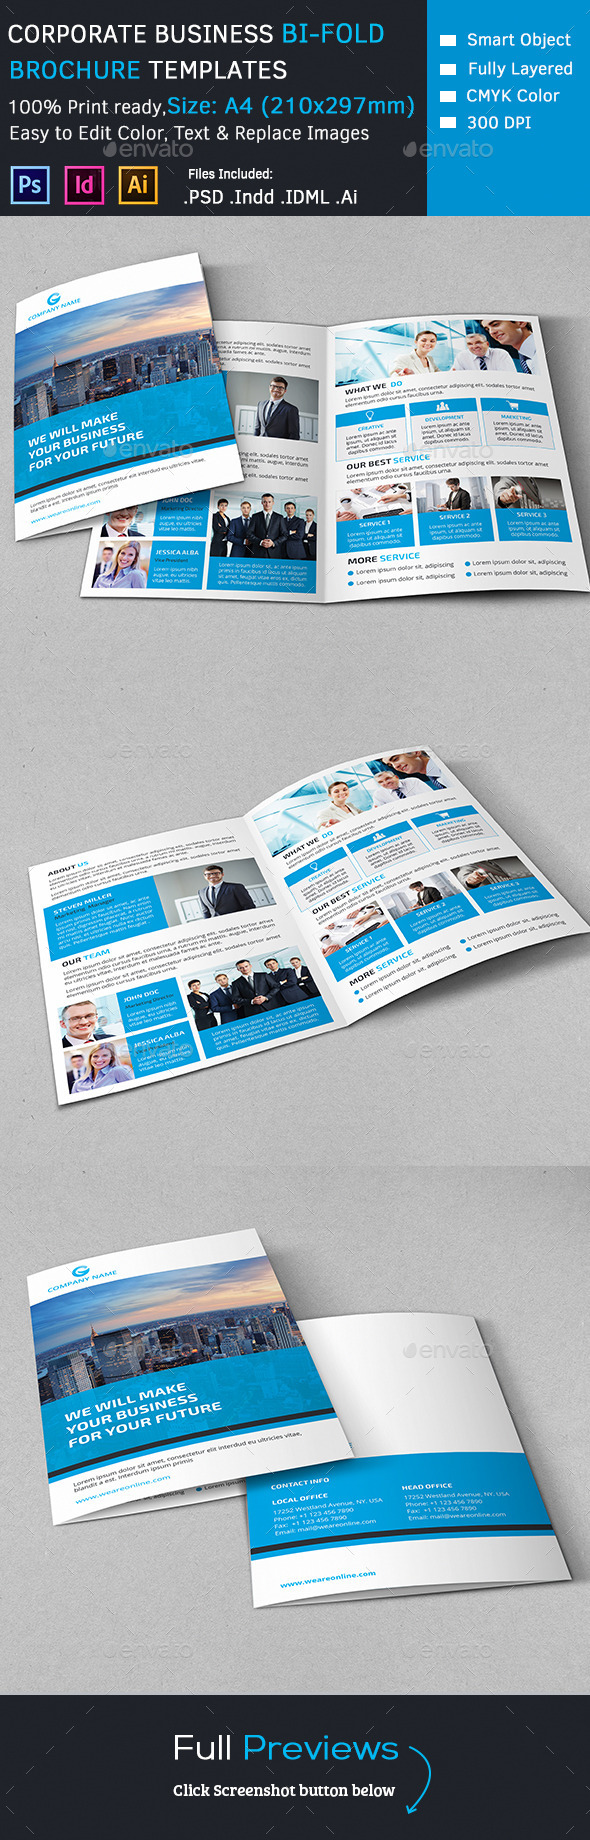 GraphicRiver Corporate Marketing Bi-Fold Brochure 10826819